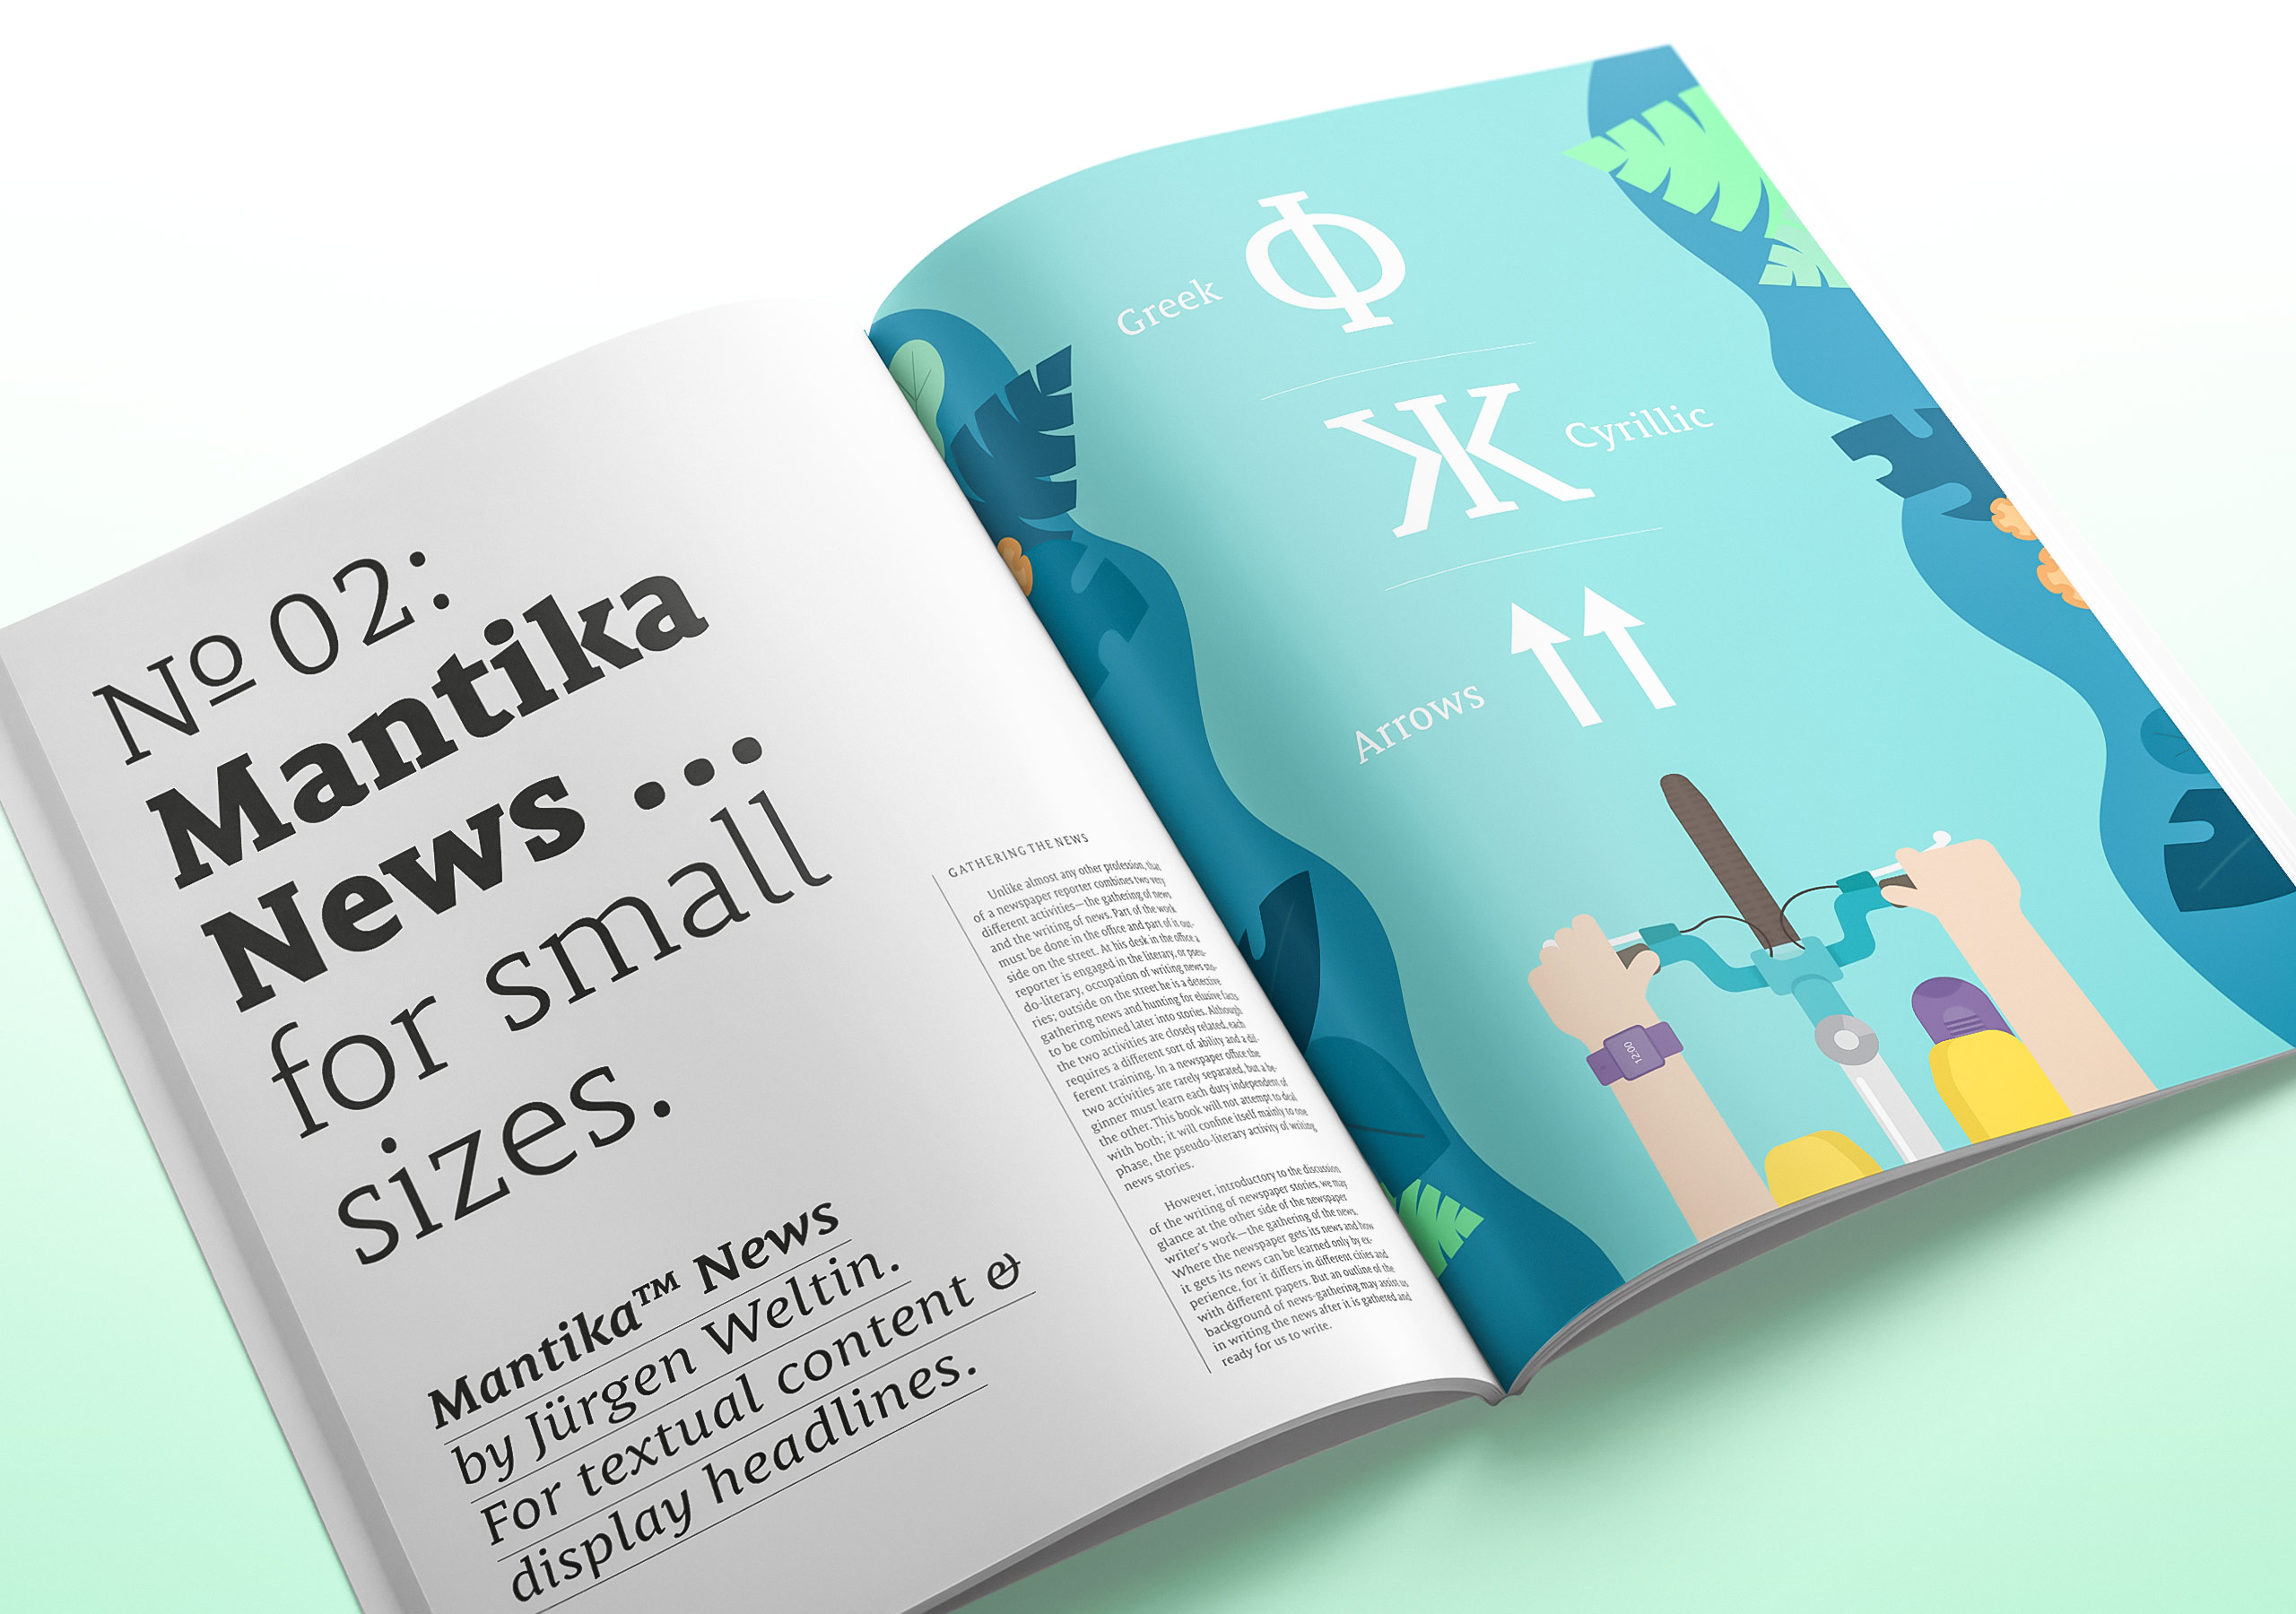 Fictitious use case for Mantika News by Alexandra Schwarzwald